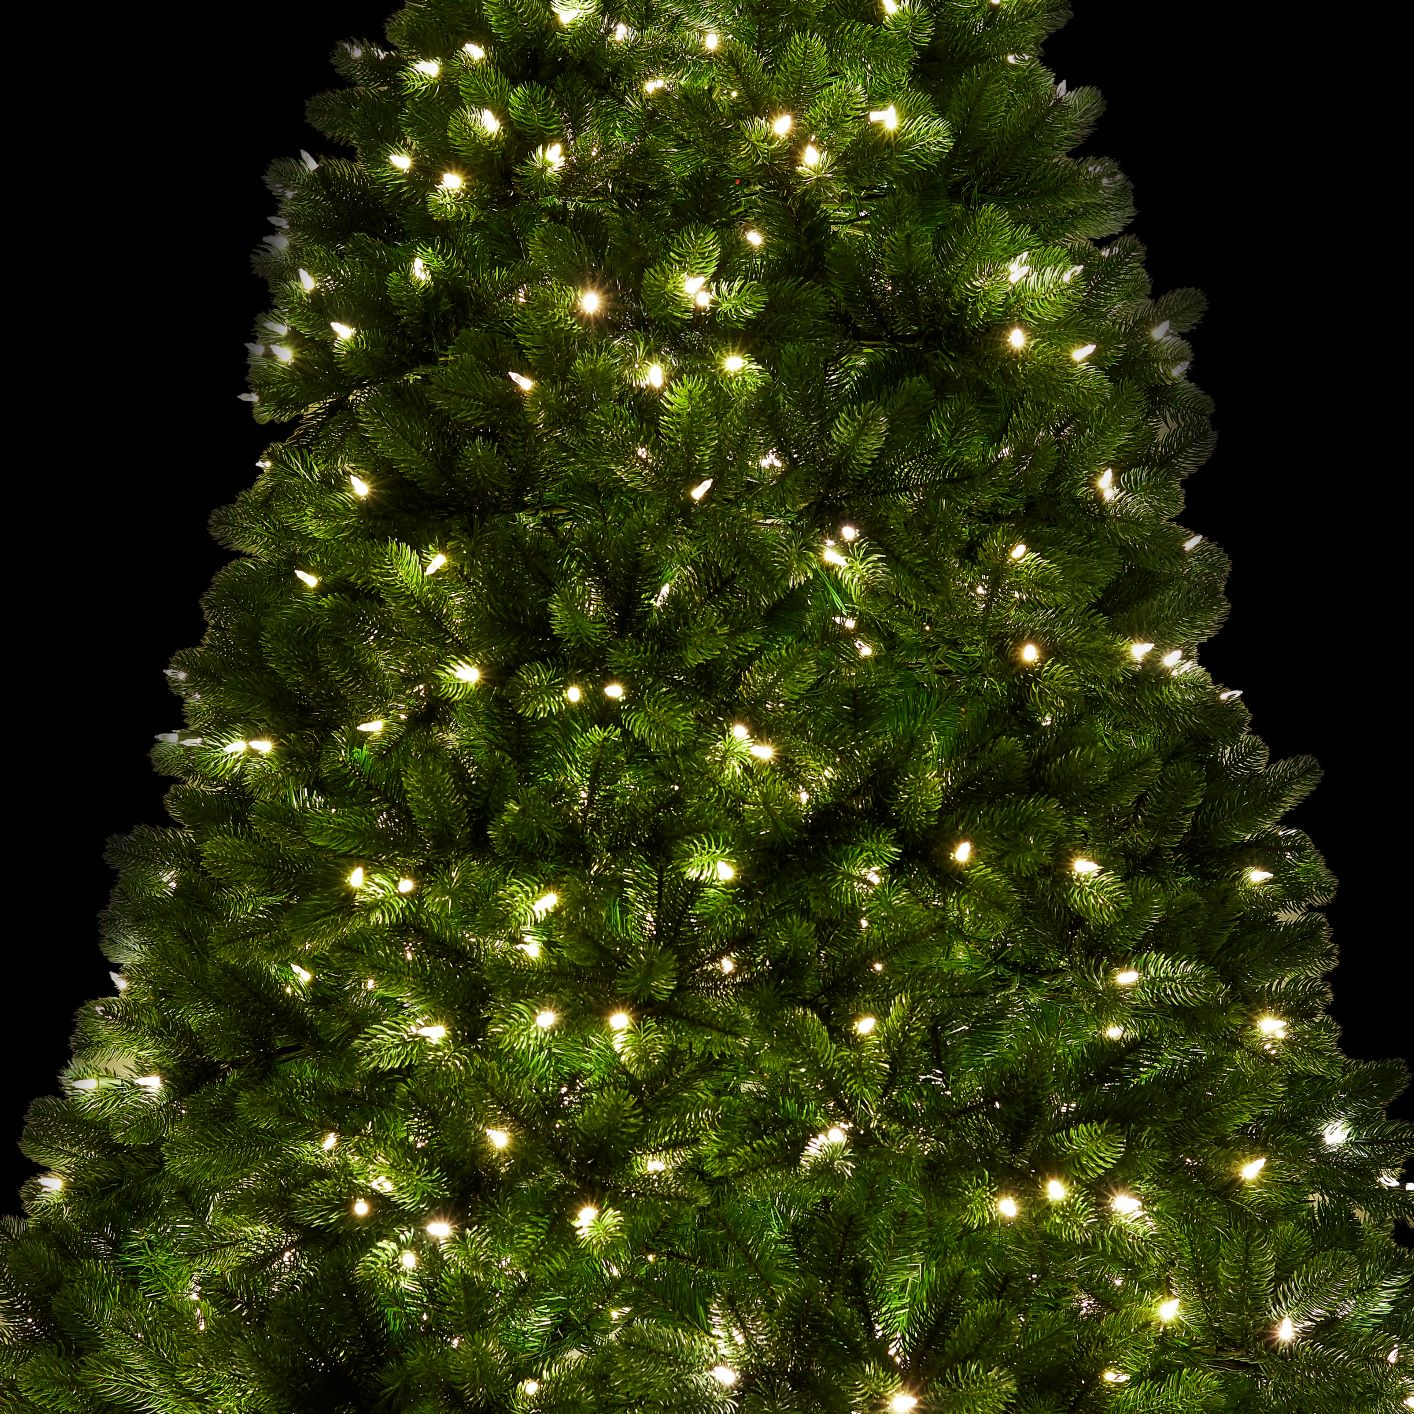 10 Royal Fir Quick Shape Artificial Christmas Tree With 1600 Warm White Multi Color Color Led Lights